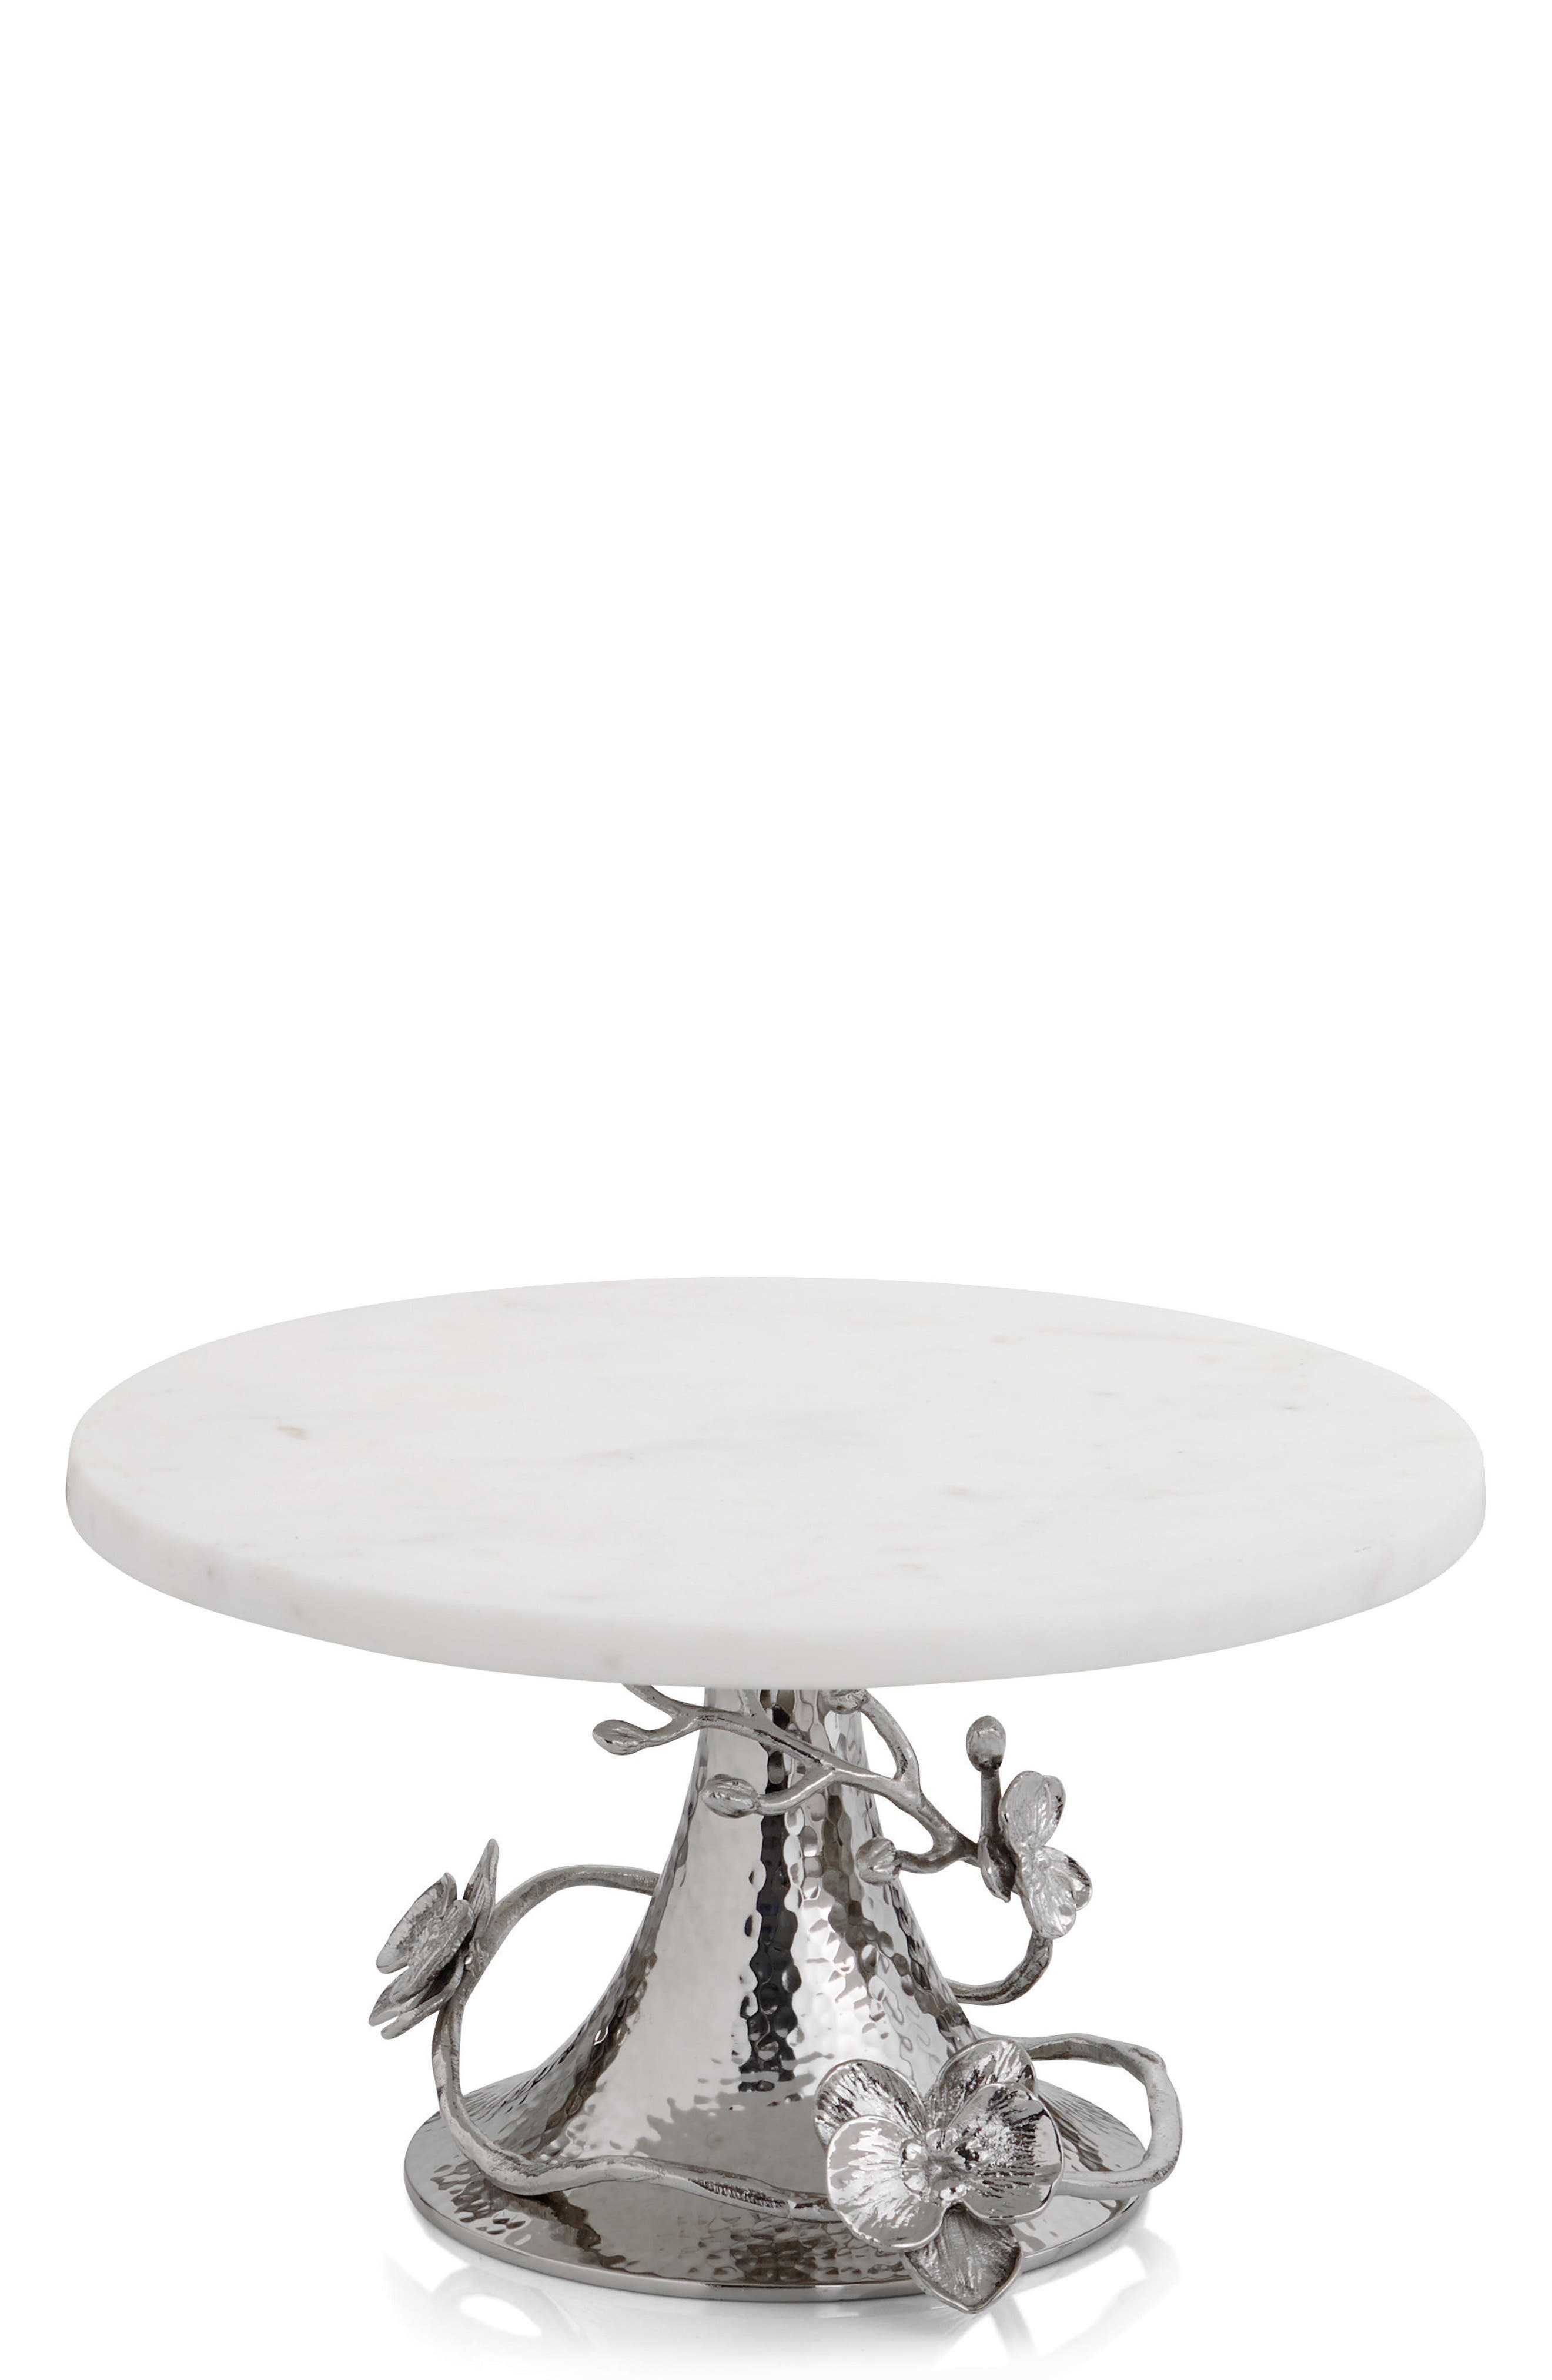 Michael Aram White Orchid Cake Stand